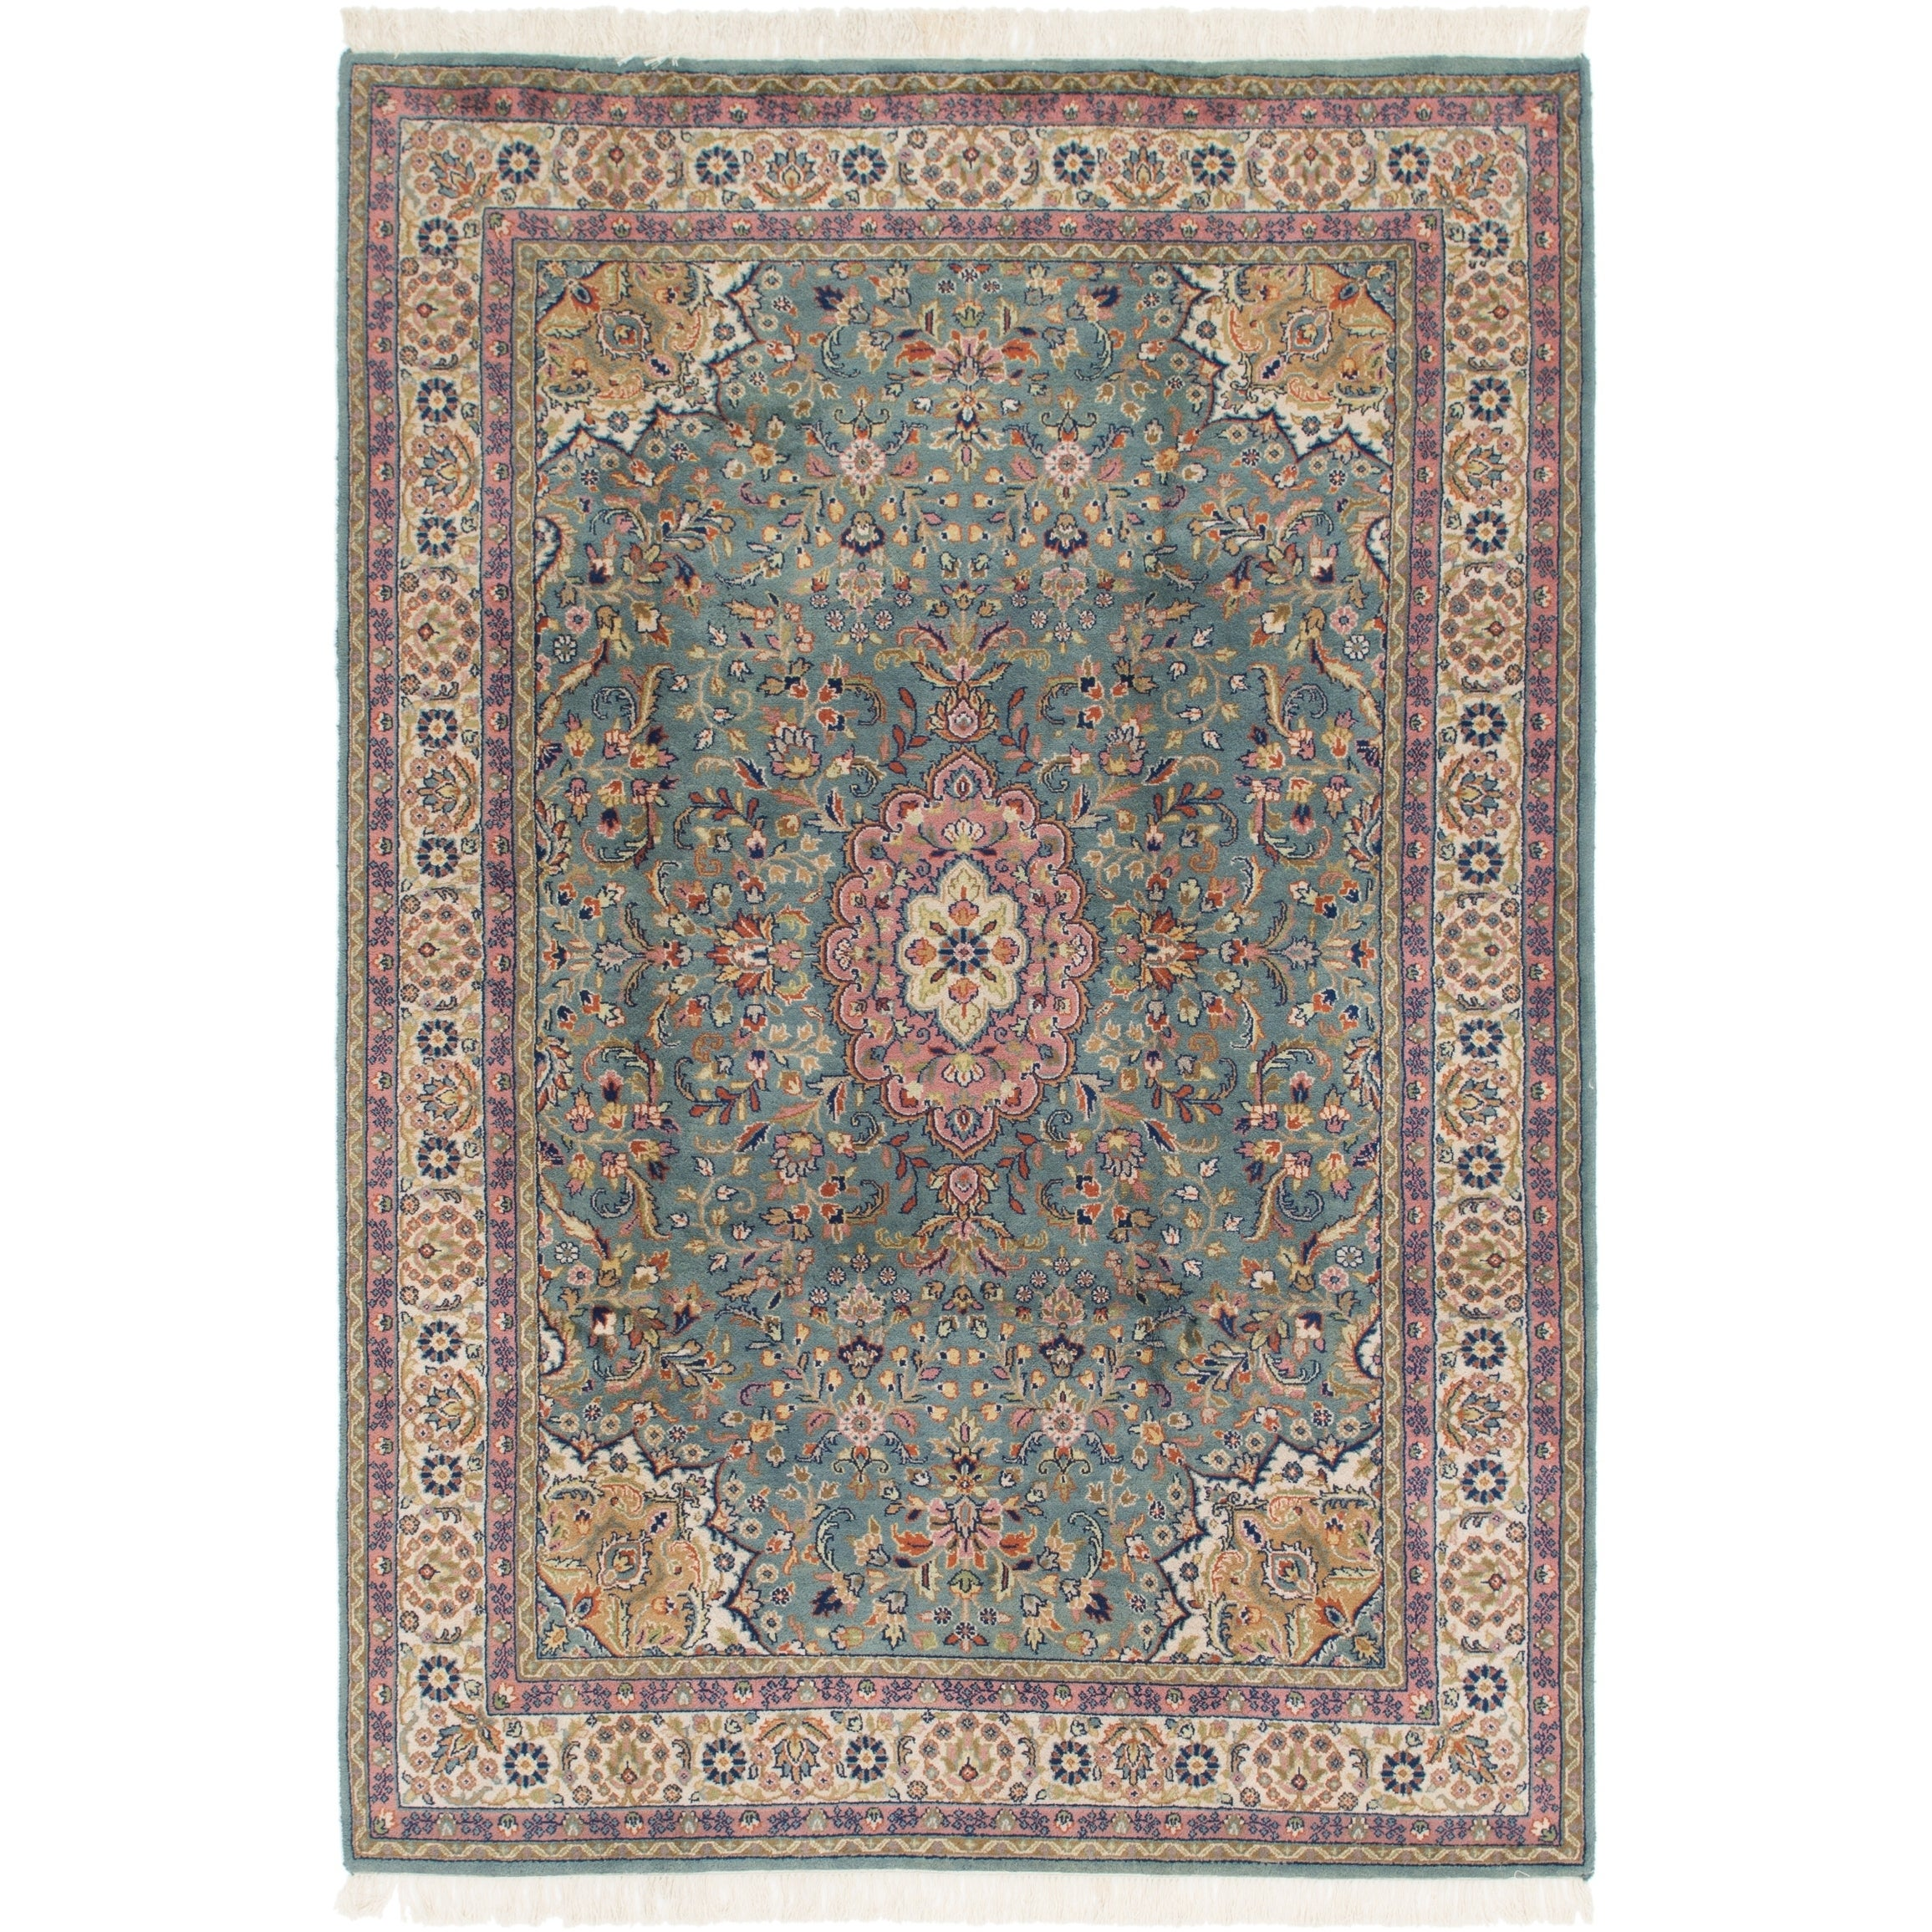 Hand Knotted Kashan Semi Antique Wool Area Rug - 6 7 x 9 9 (Blue - 6 7 x 9 9)